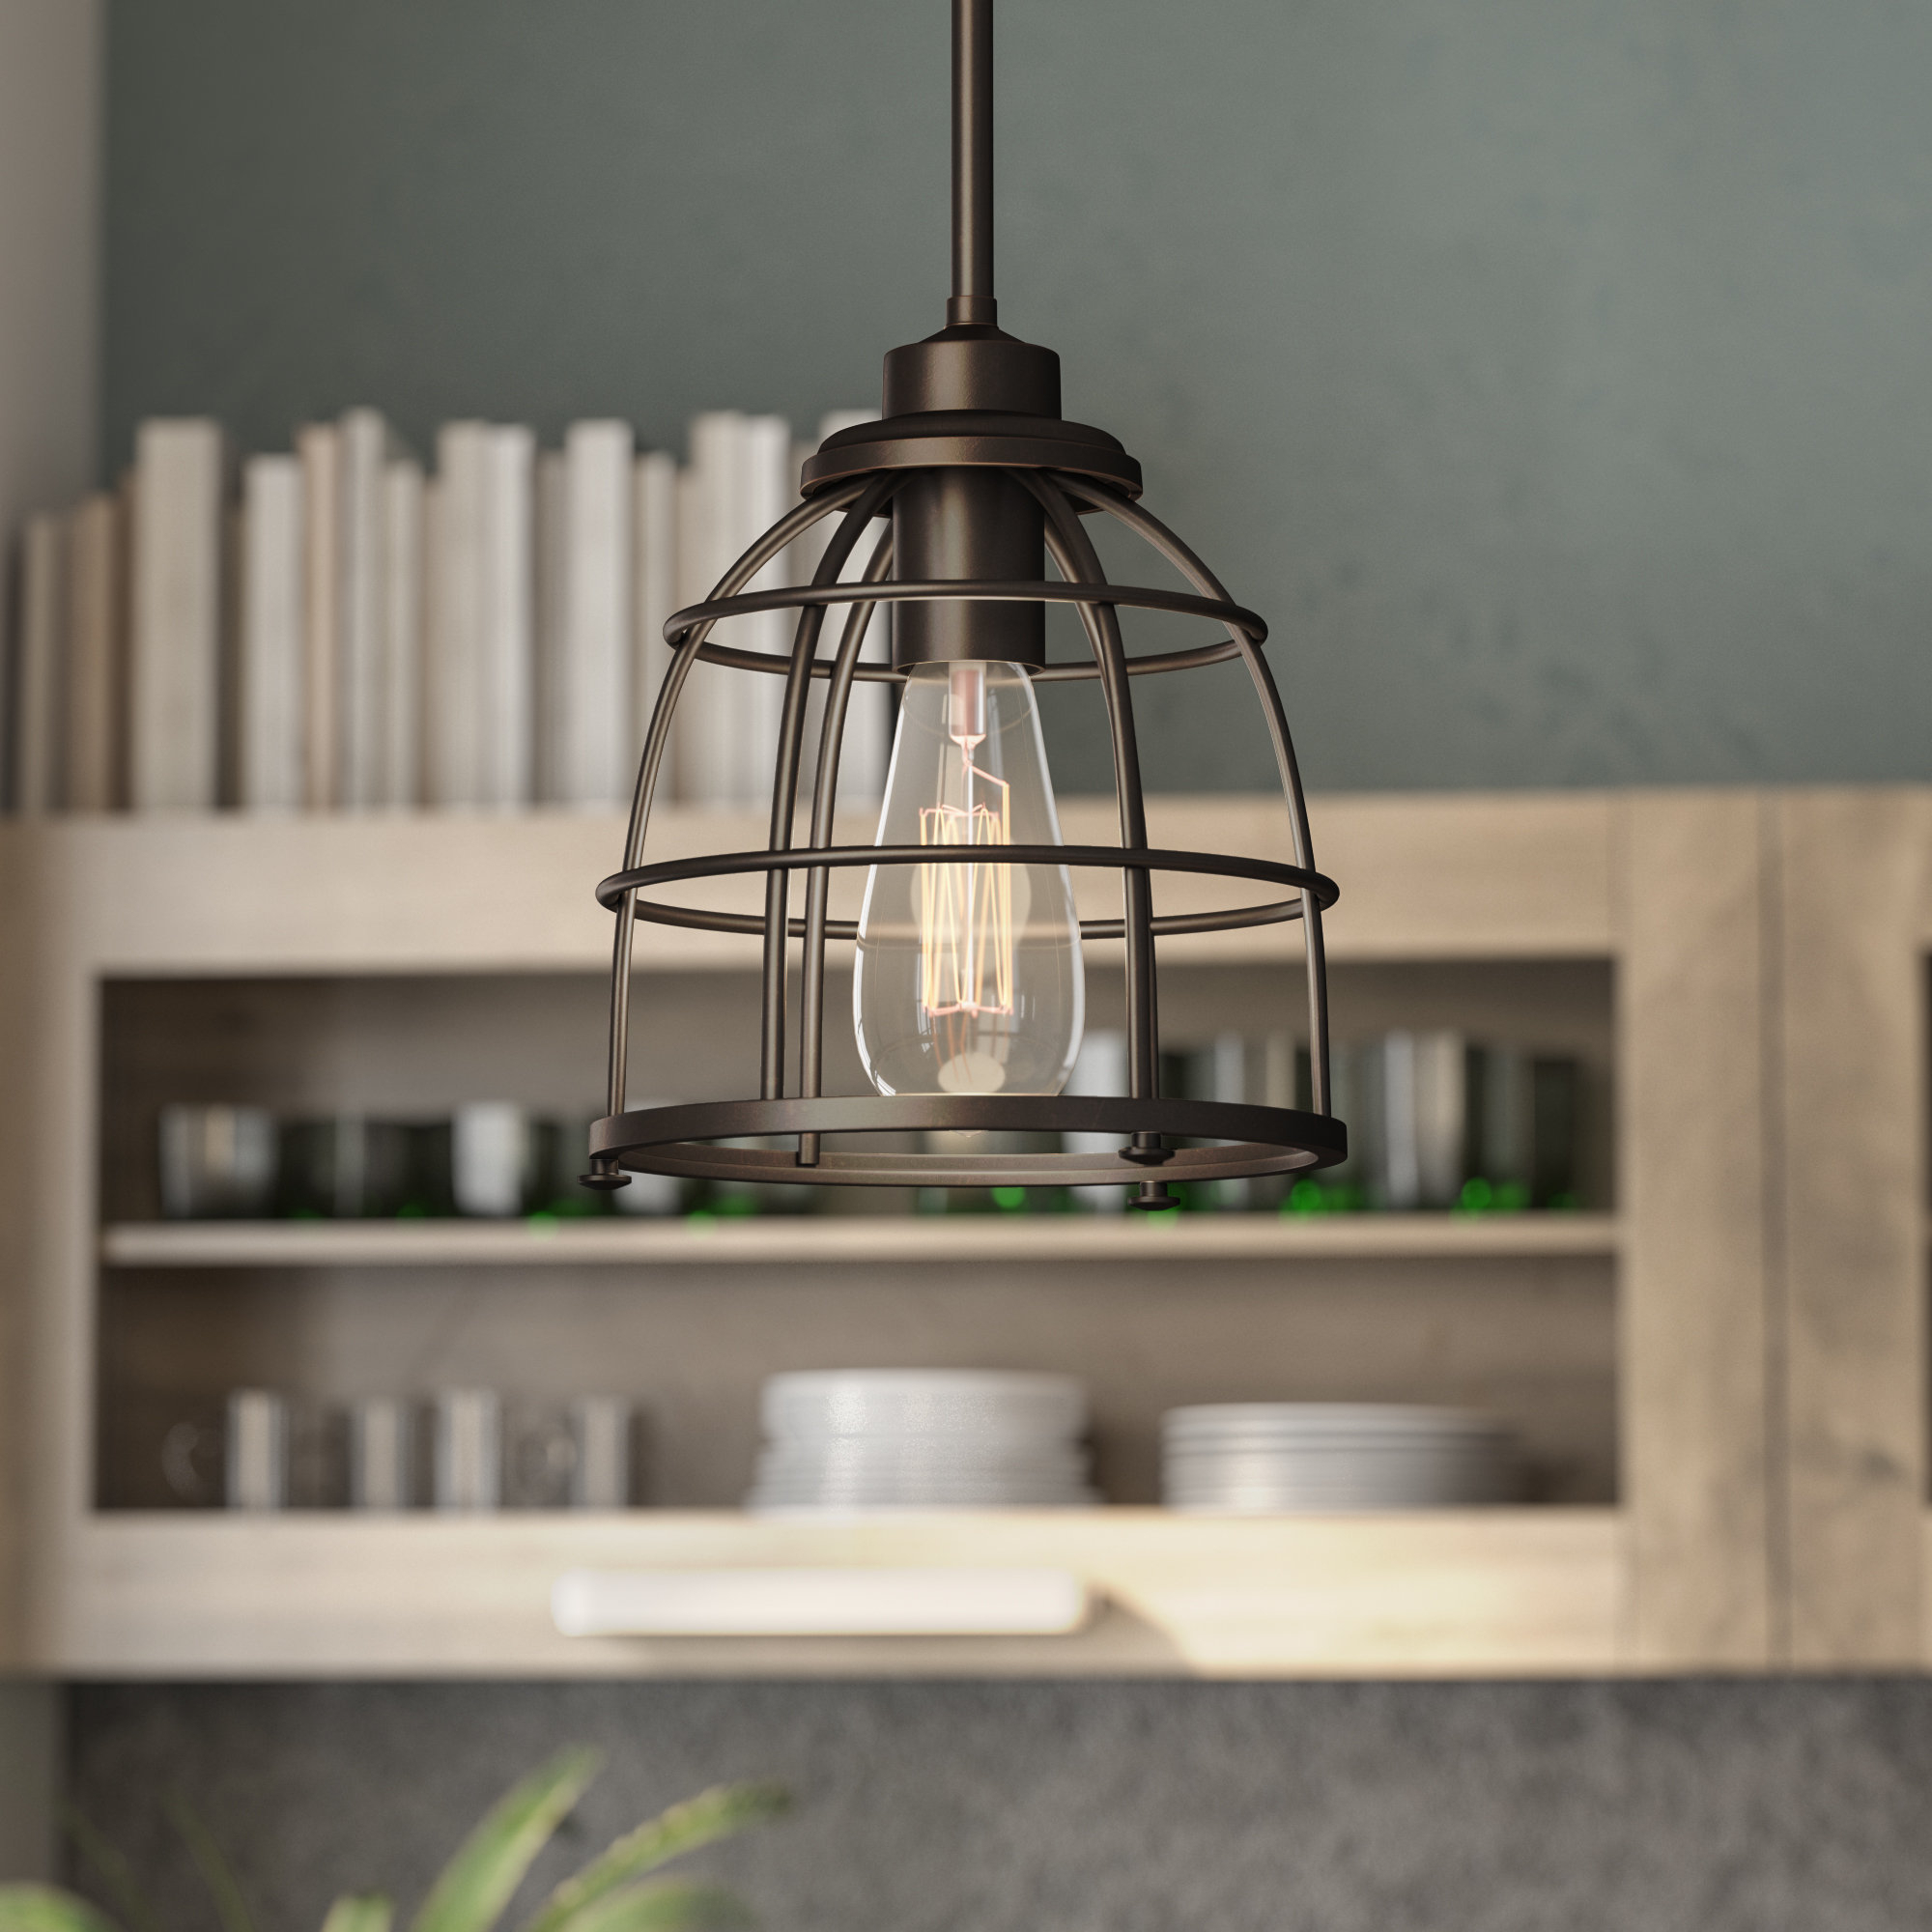 Harney 1 Light Single Bell Pendant Throughout Widely Used 1 Light Single Bell Pendants (View 8 of 20)